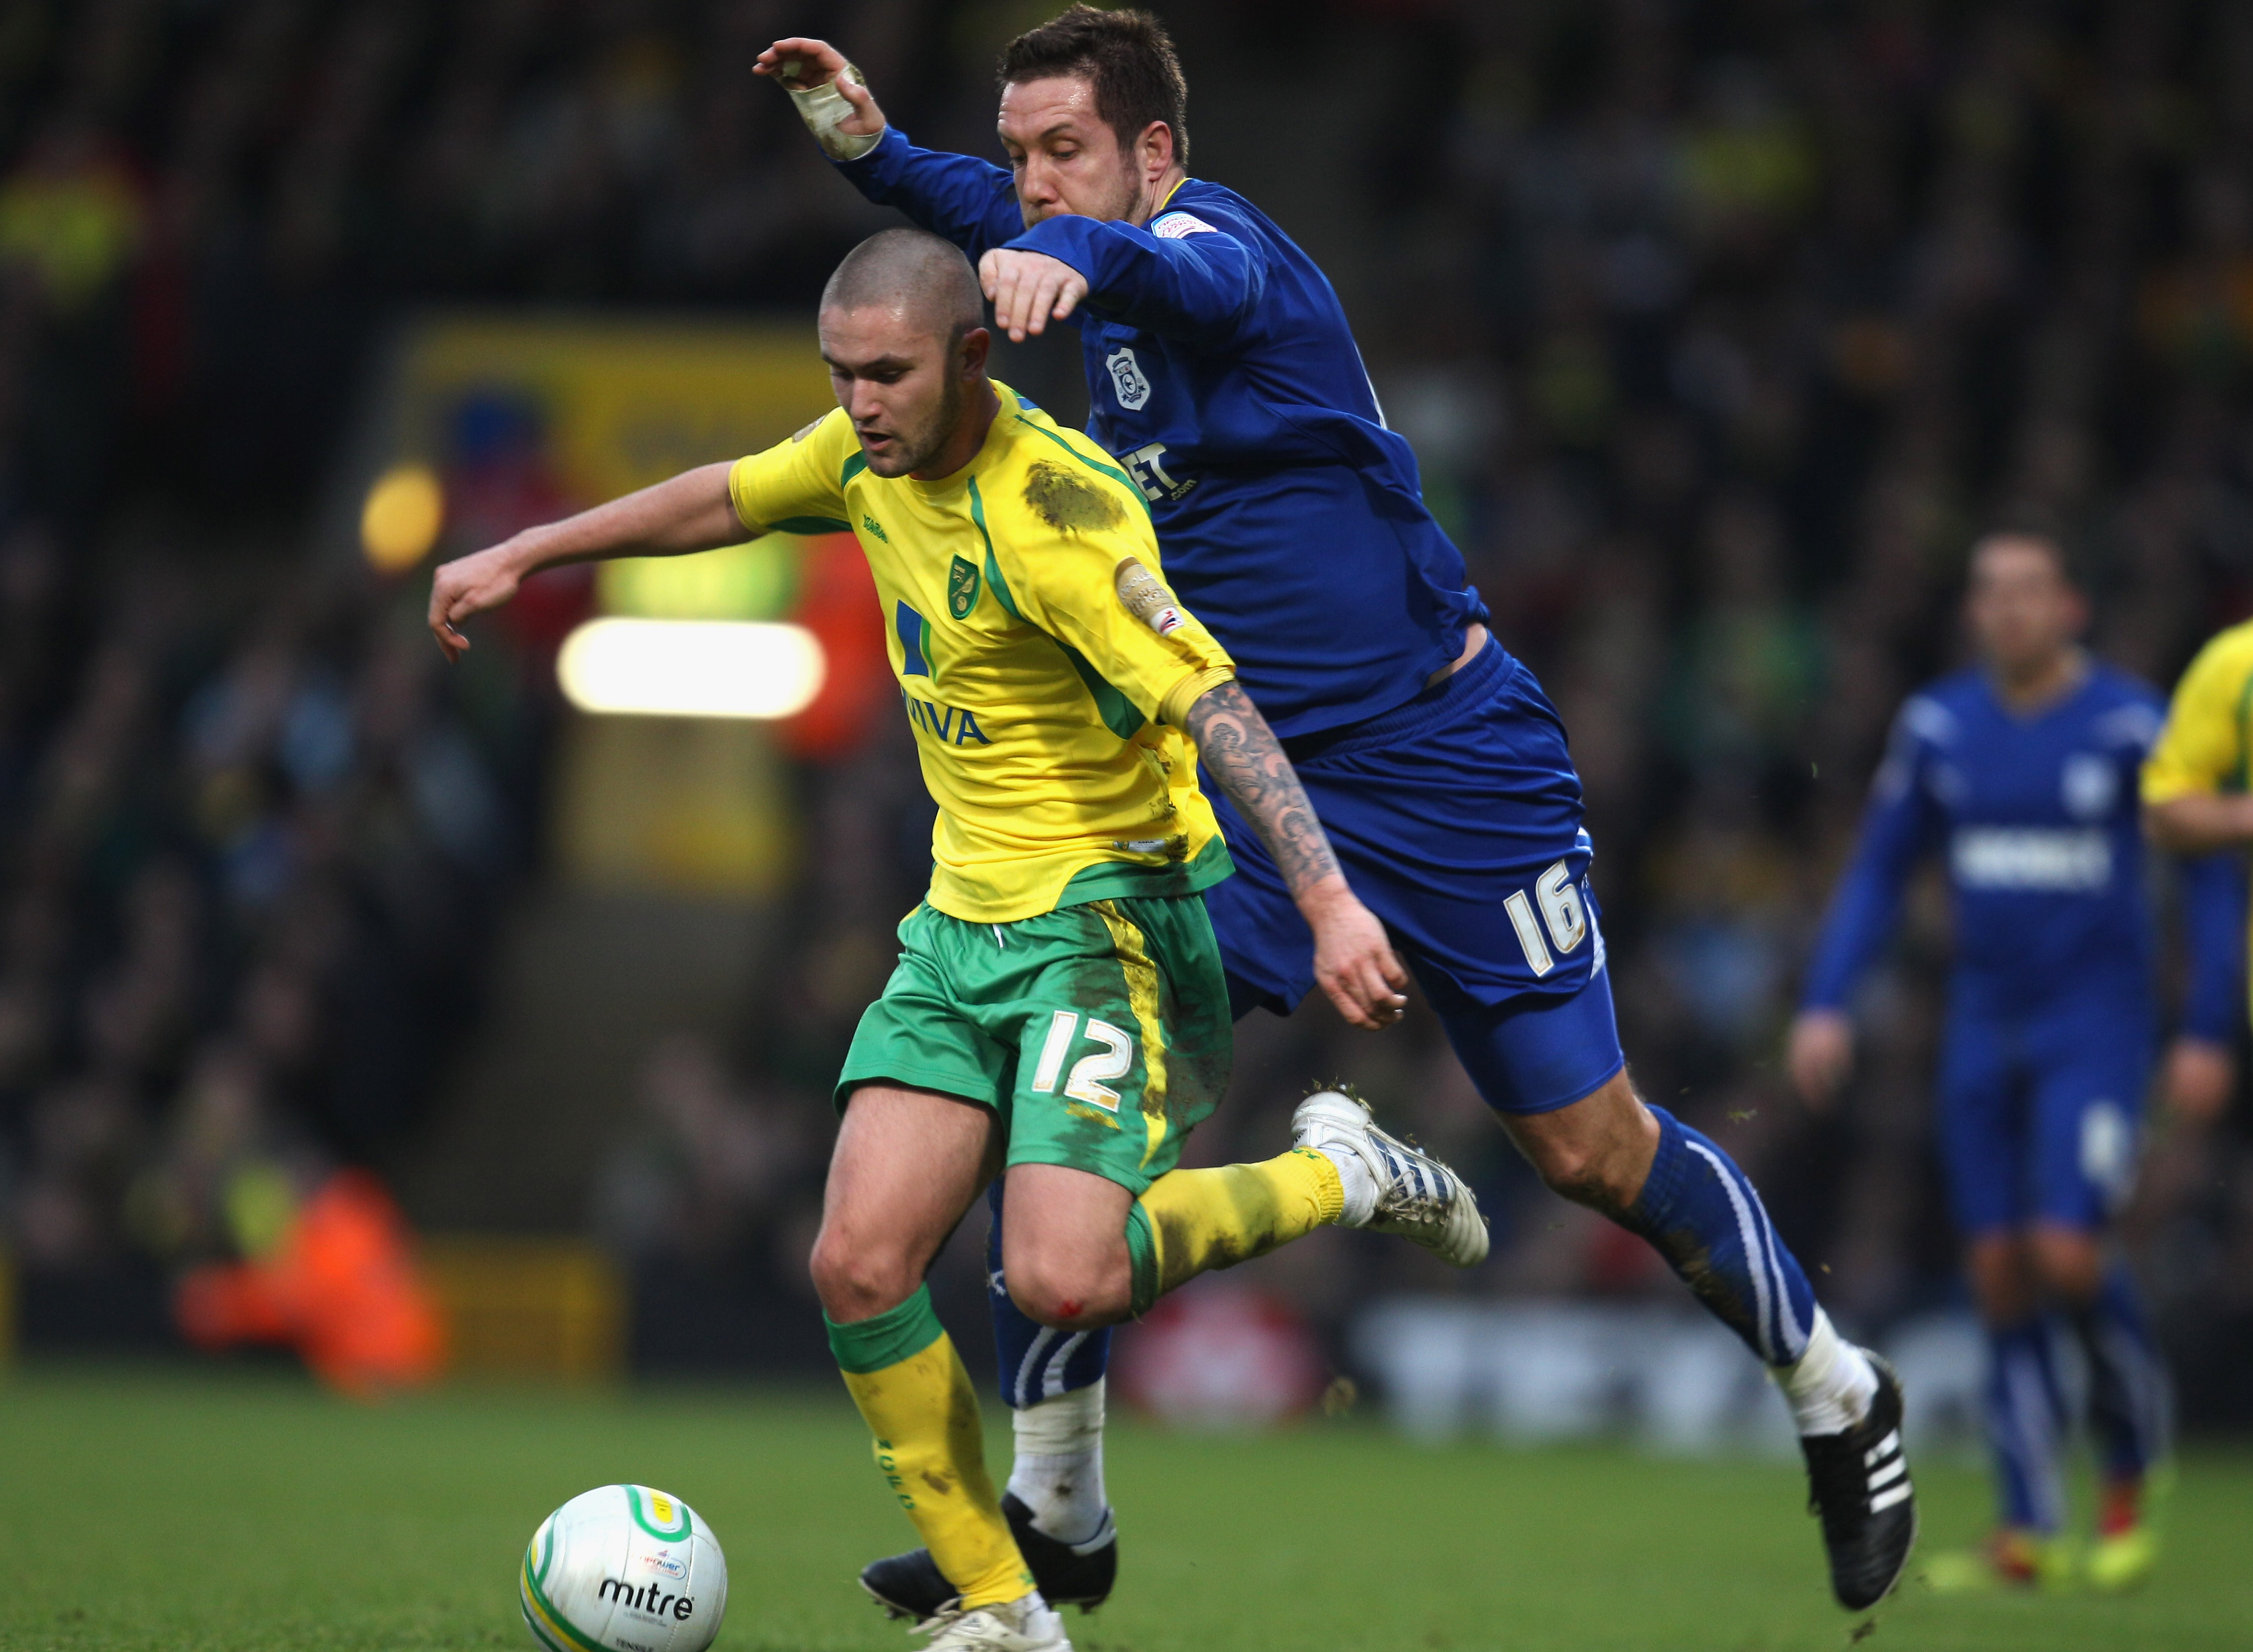 NORWICH, ENGLAND - JANUARY 15:   Henri Lansbury of Norwich City battes with Jon Parkin of Cardiff City during the npower Championship match between Norwich City and  Cardiff City at Carrow Road on January 15, 2011 in Norwich, England.  (Photo by Mark Thom